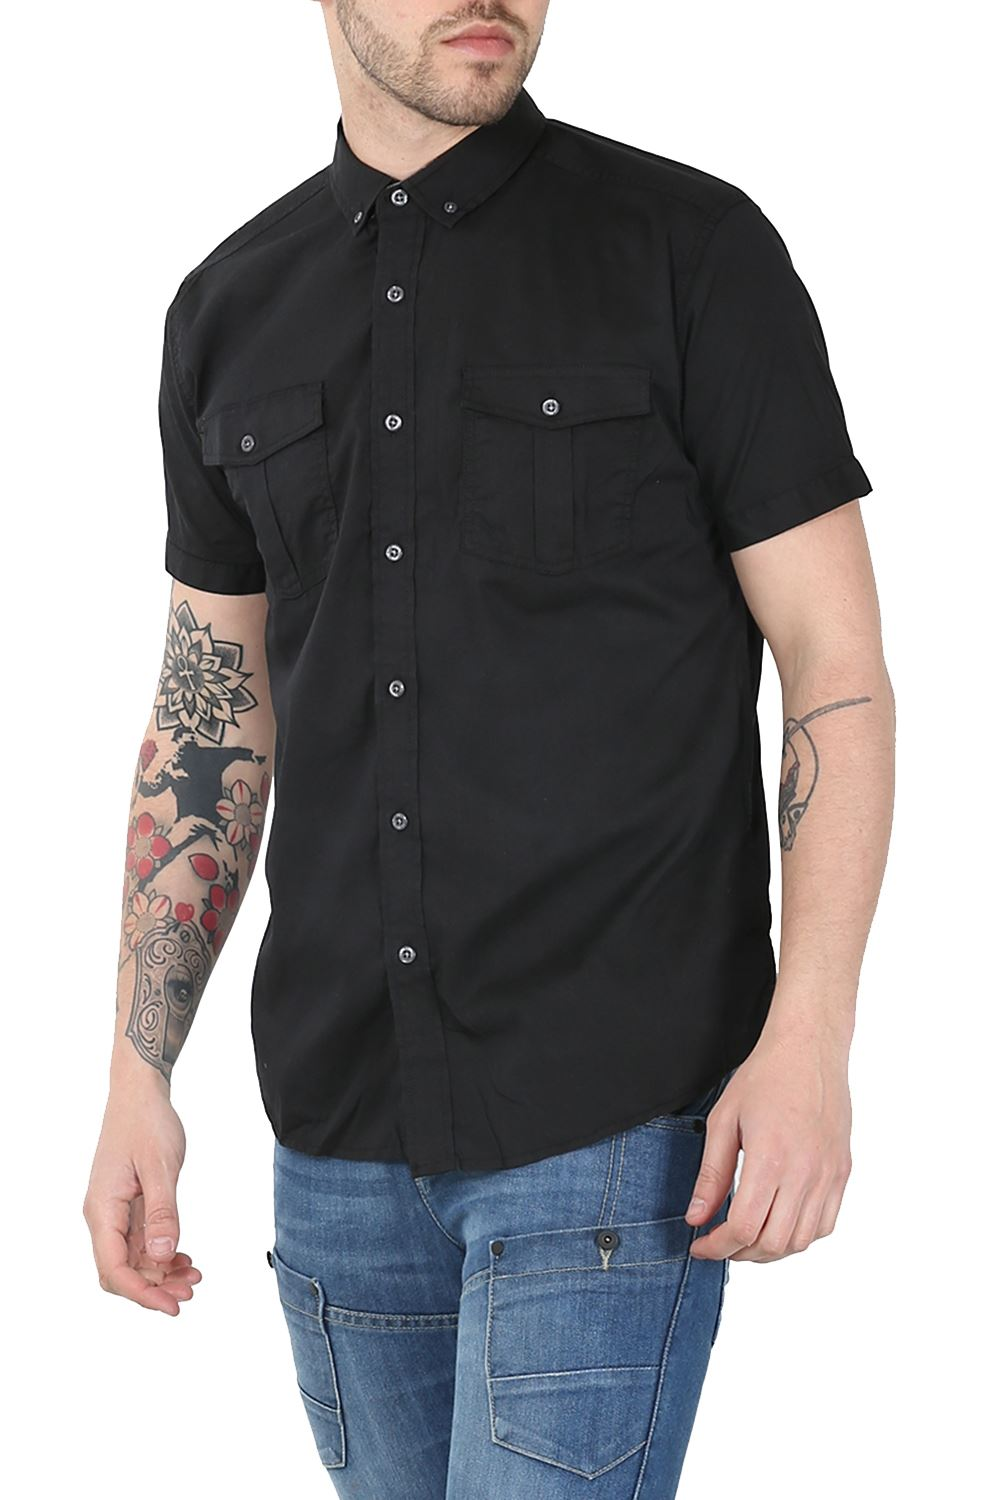 mens plain front pockets button down short sleeve collard